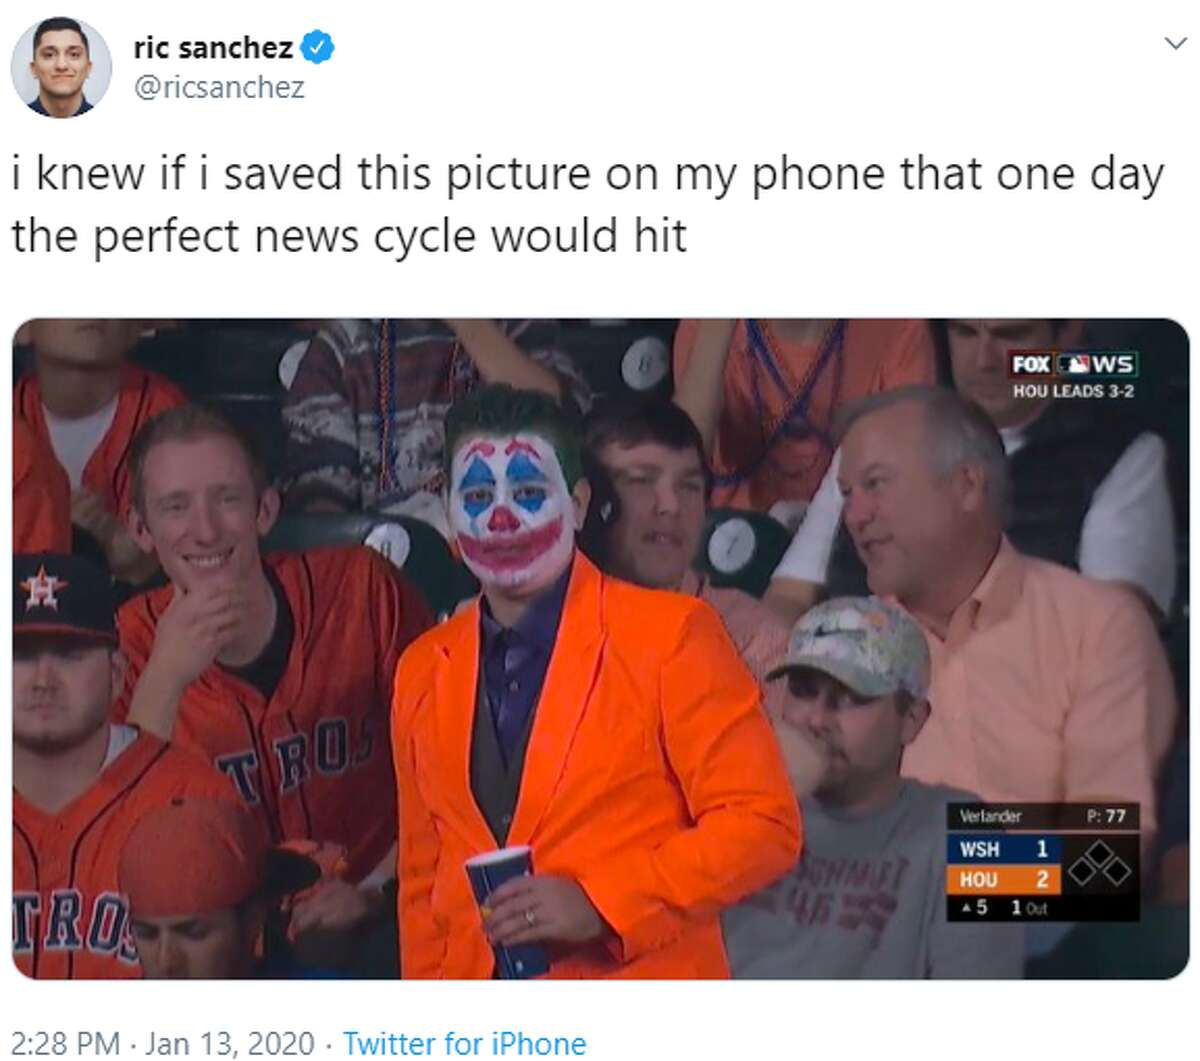 PHOTOS: The best memes from the Astros' housecleaning on Monday Source: Twitter.com/ricsanchez